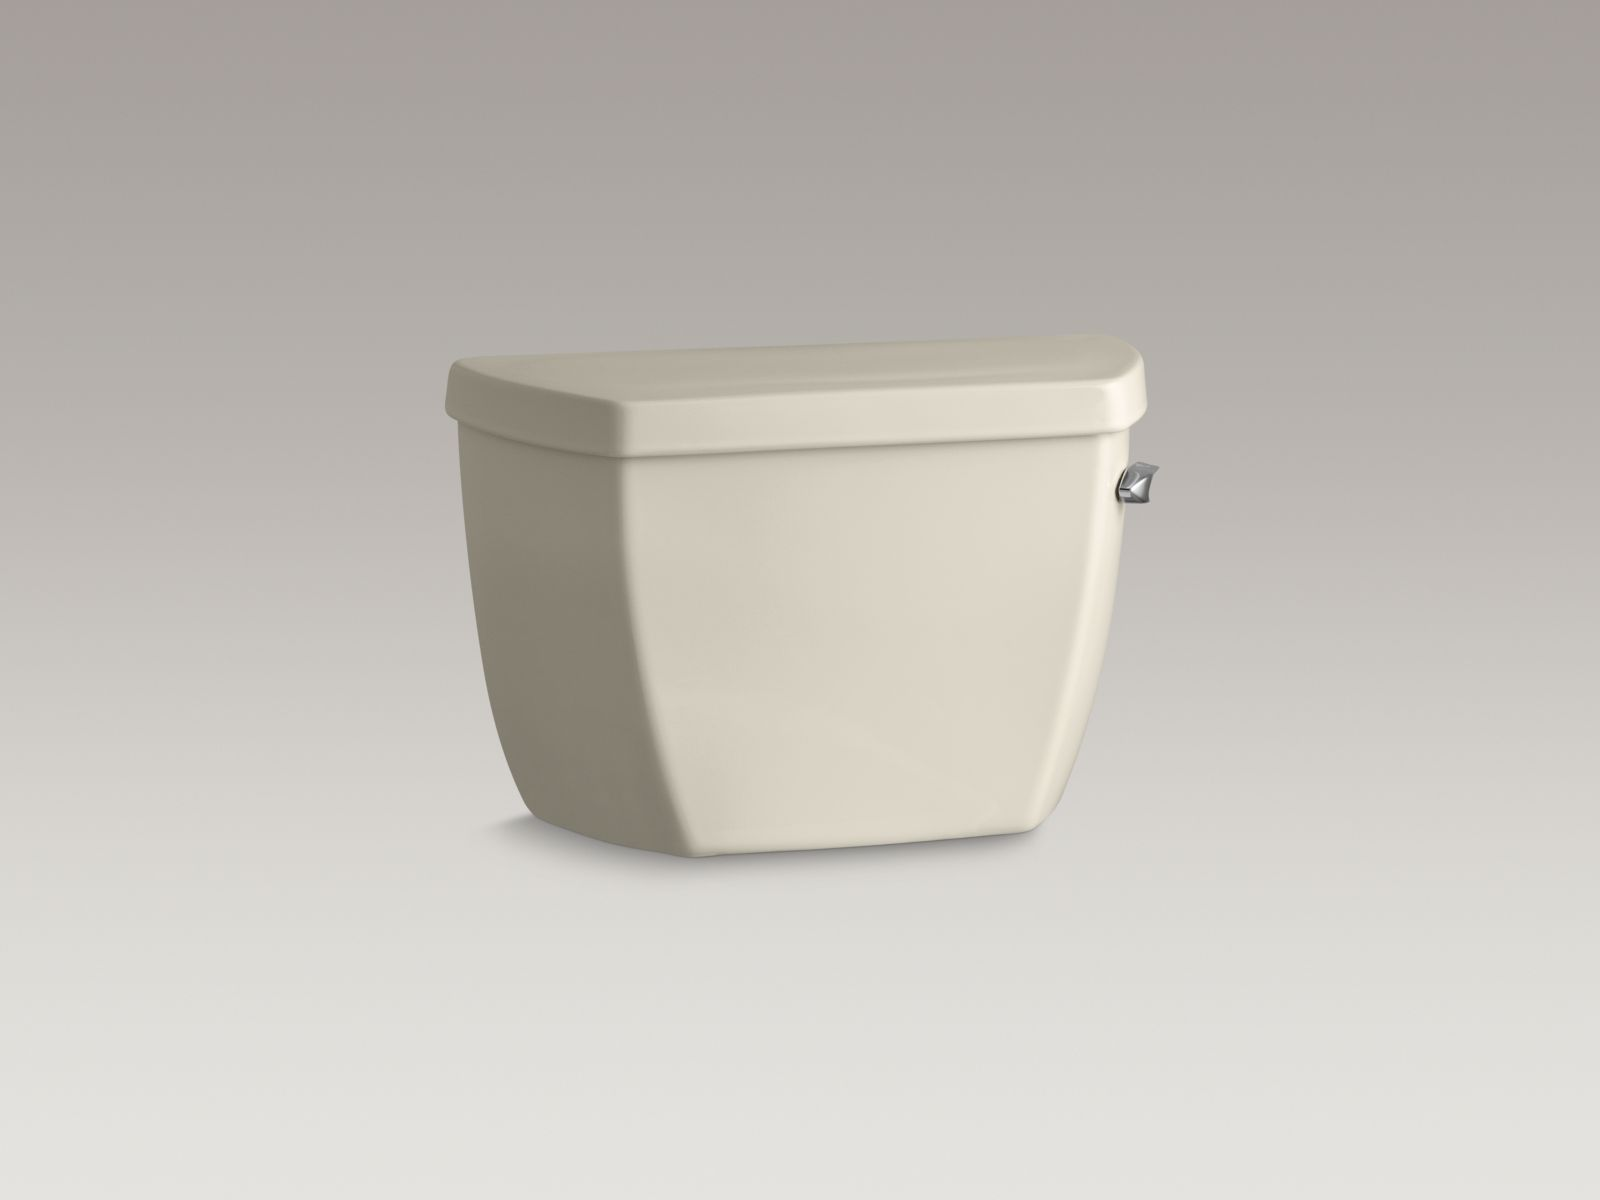 Kohler K-4645-RA-47 Highline Classic 1.6 GPF Pressure Lite Toilet Tank with Right-hand Trip Lever Almond